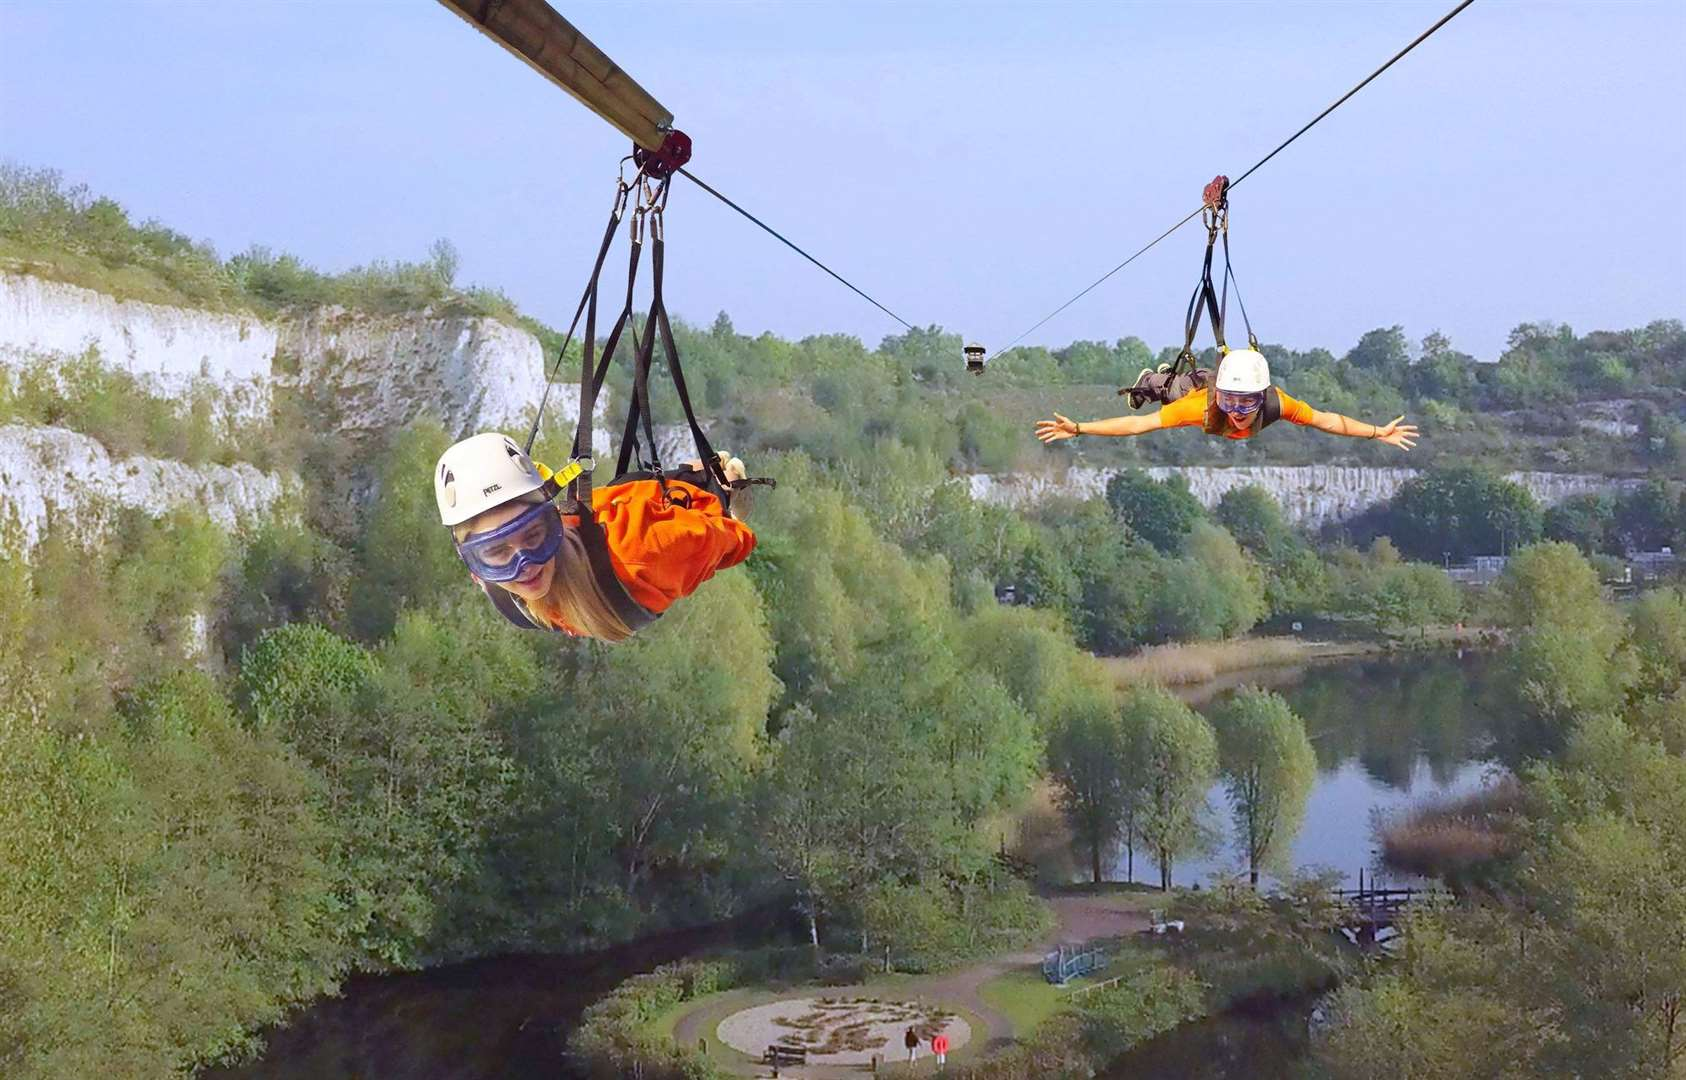 Are you brave enough to try the zip wire?